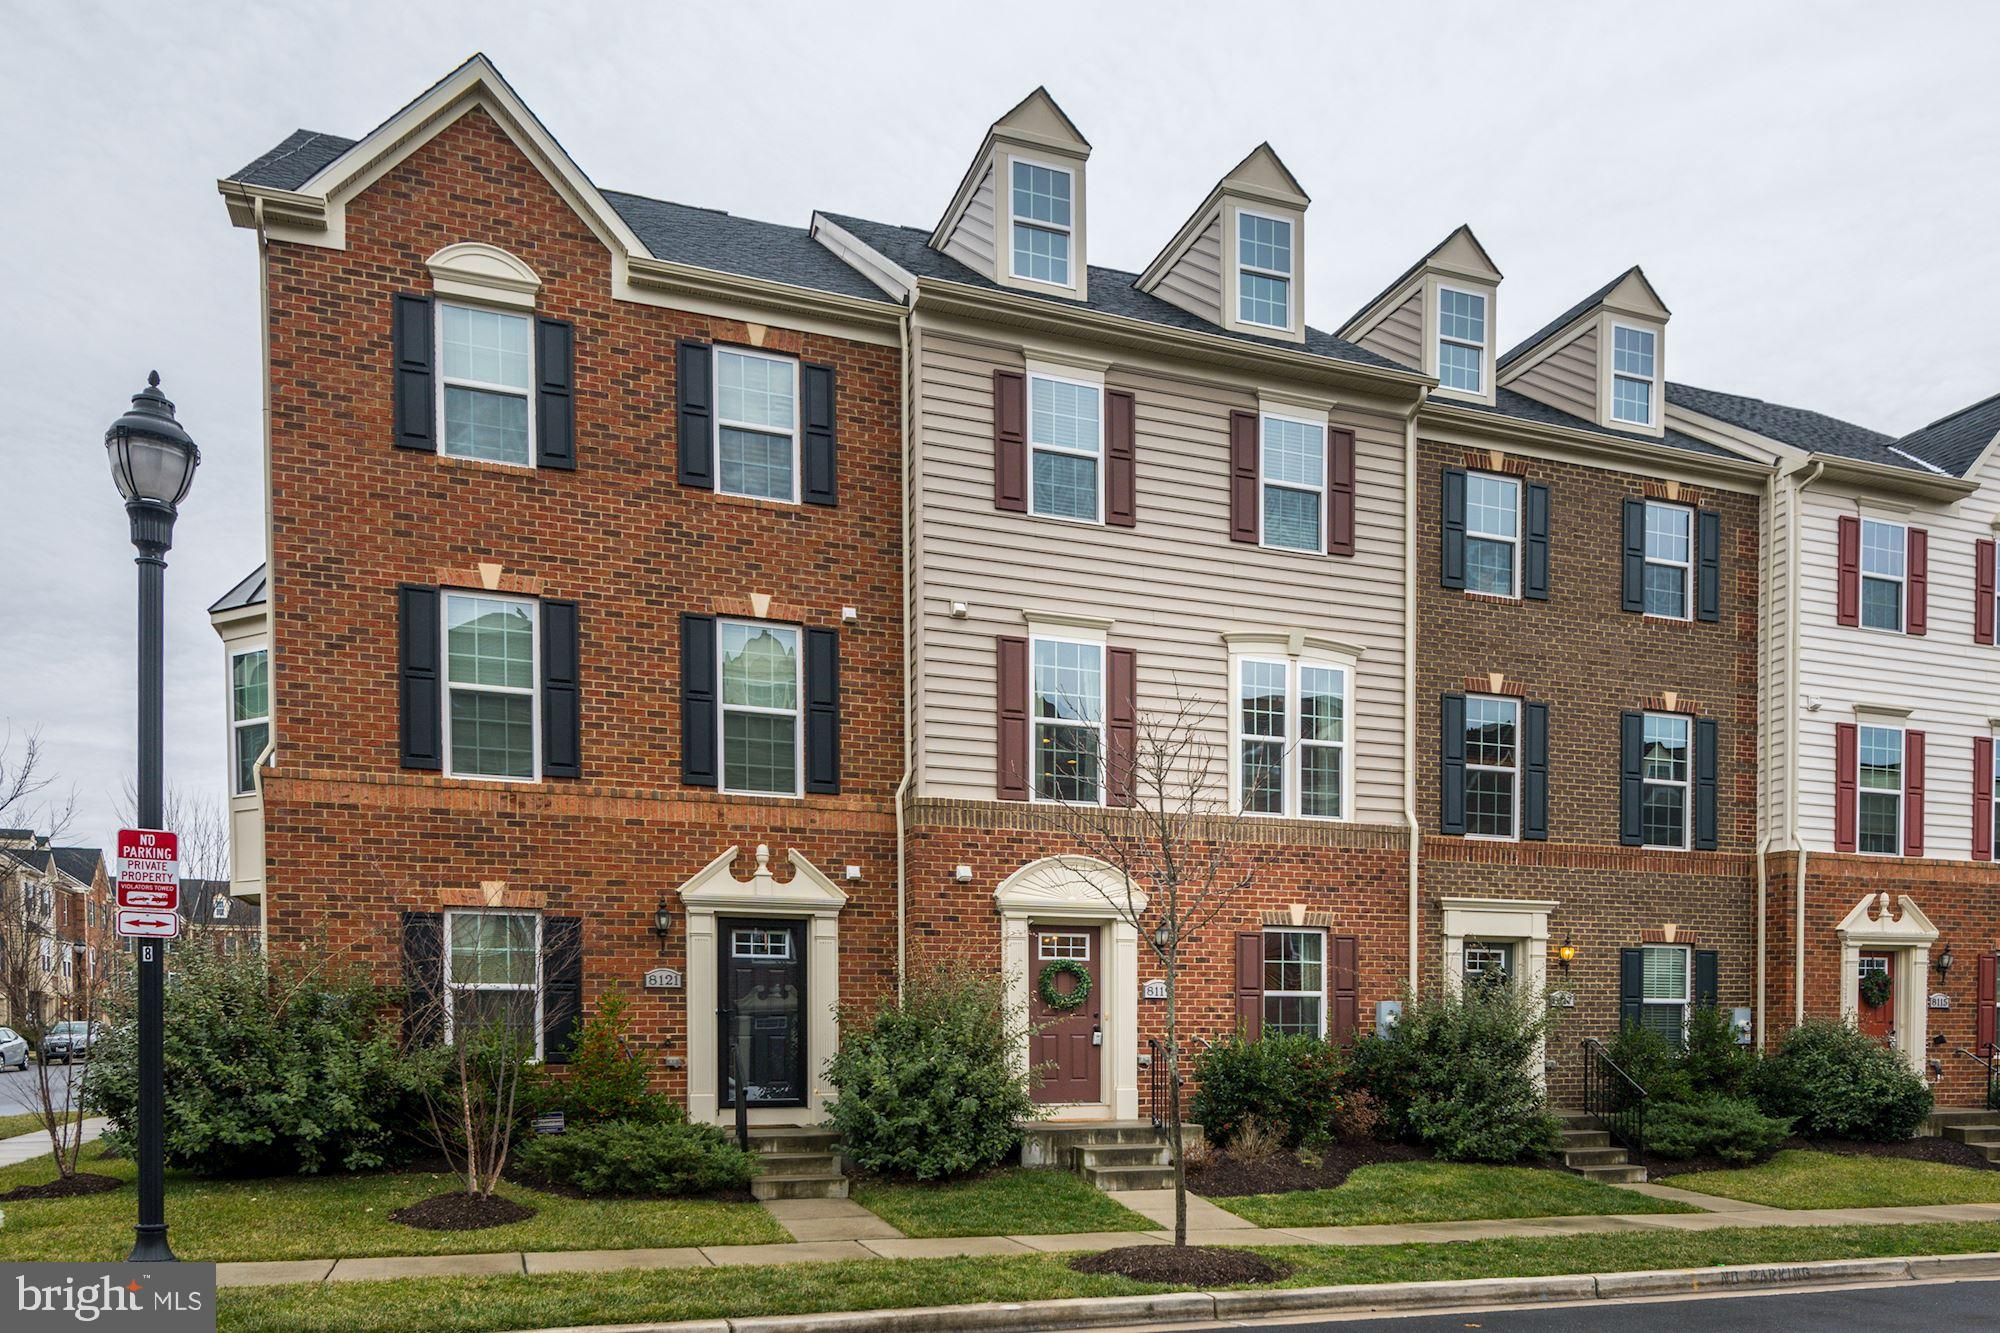 8119 S CHANNEL DRIVE, GREENBELT, MD 20770